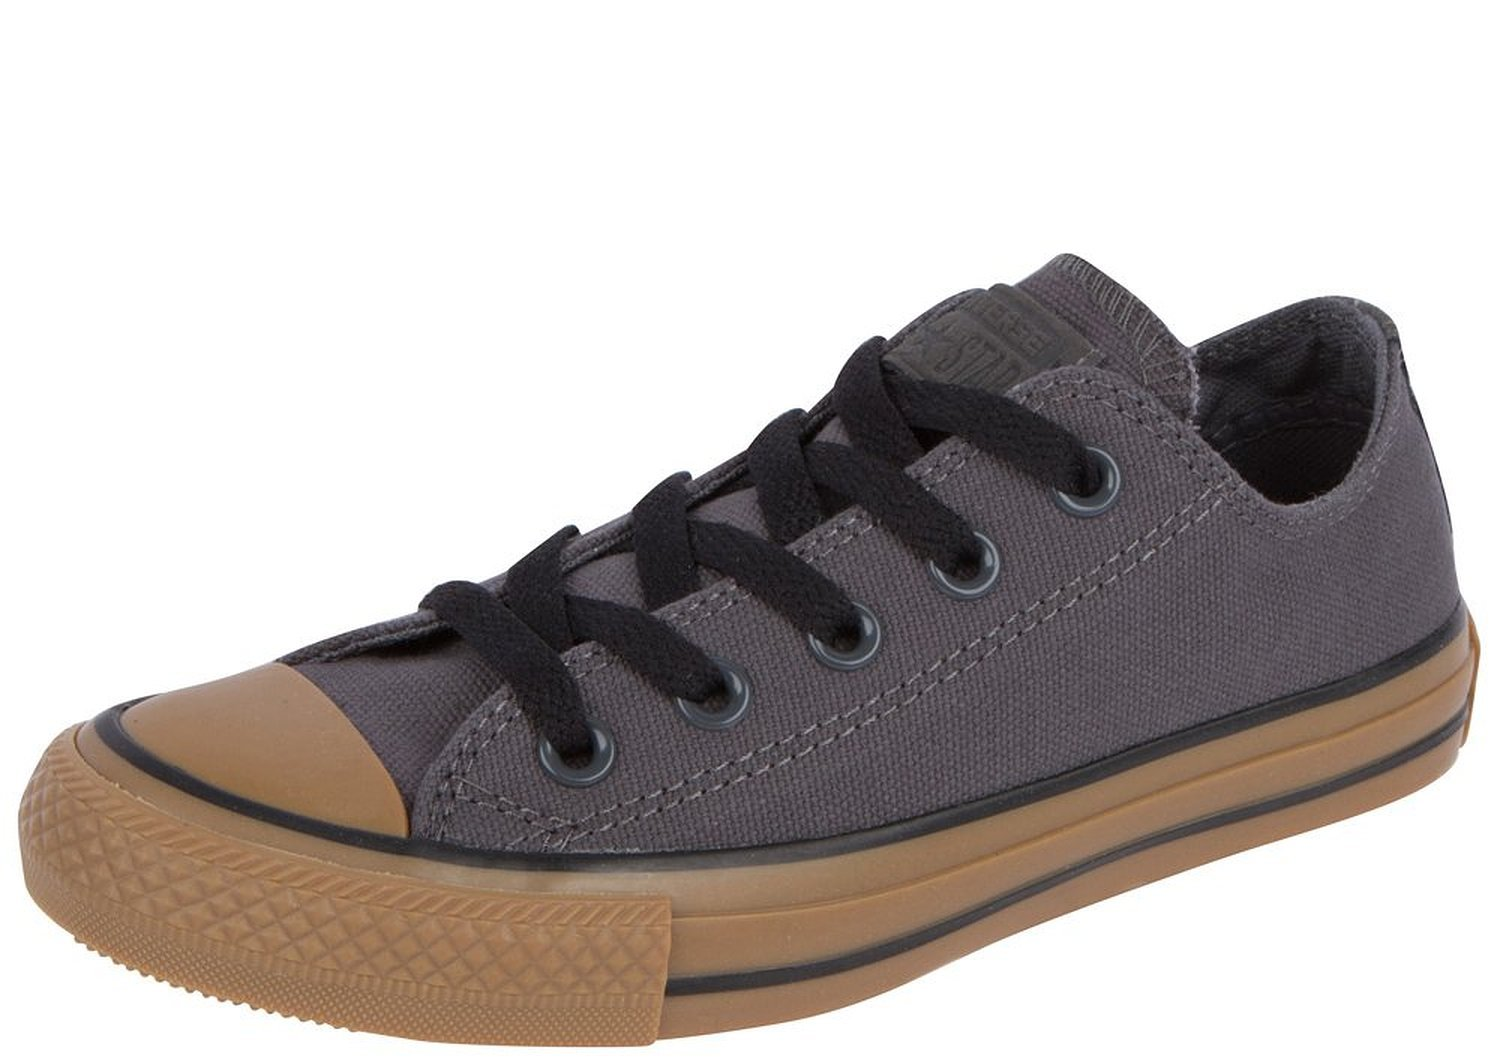 7975f31881ed9f Converse Unisex Chuck Taylor All Star Low Basketball Shoe (38 M EU 7.5 B(M)  US Women 5.5 D(M) US Men